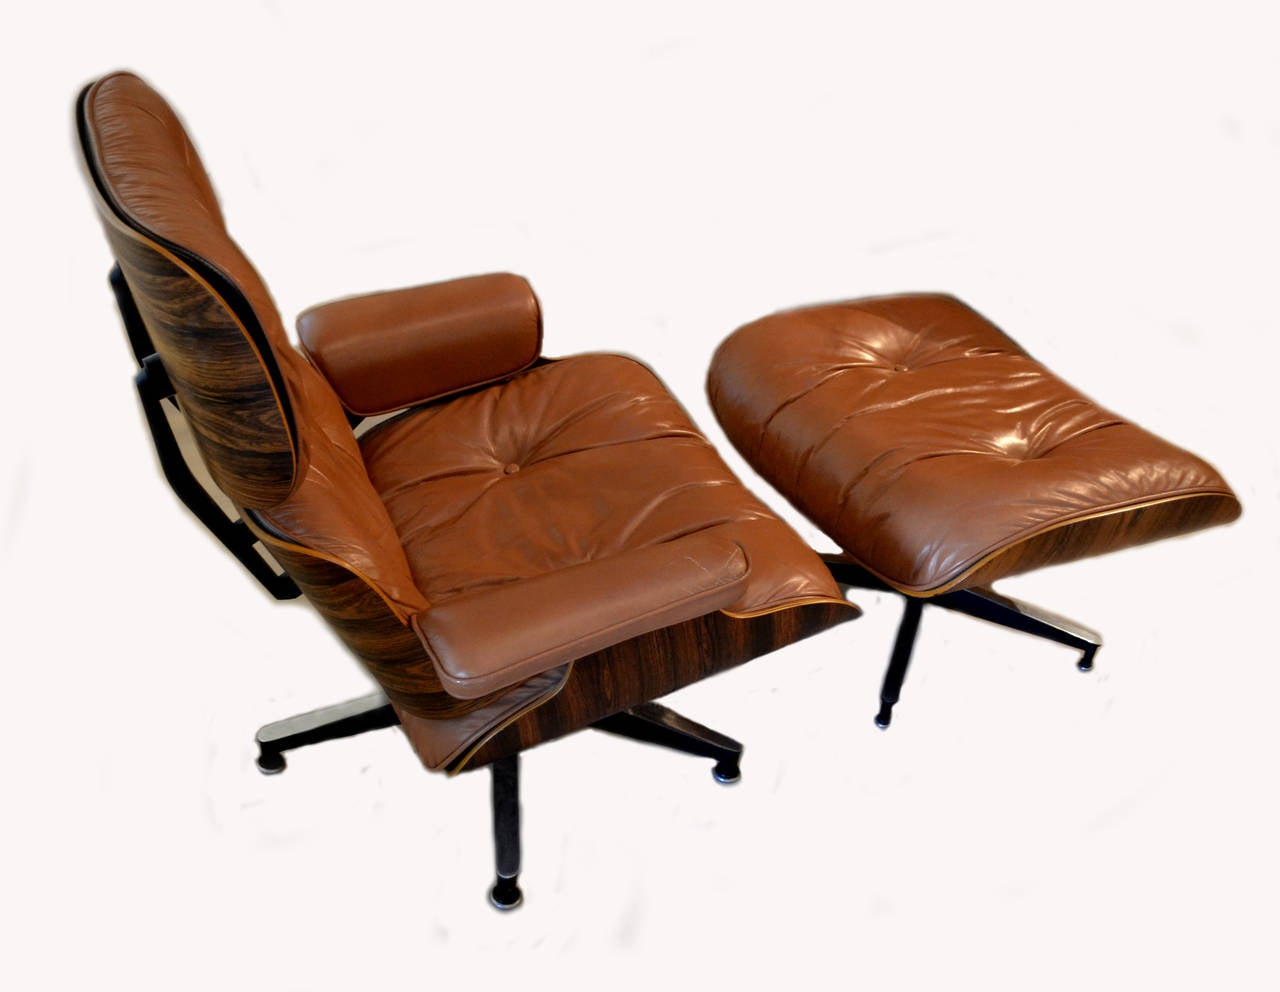 herman miller chairs vintage swing chair gsc-majka-3s-ge eames lounge and ottoman by at